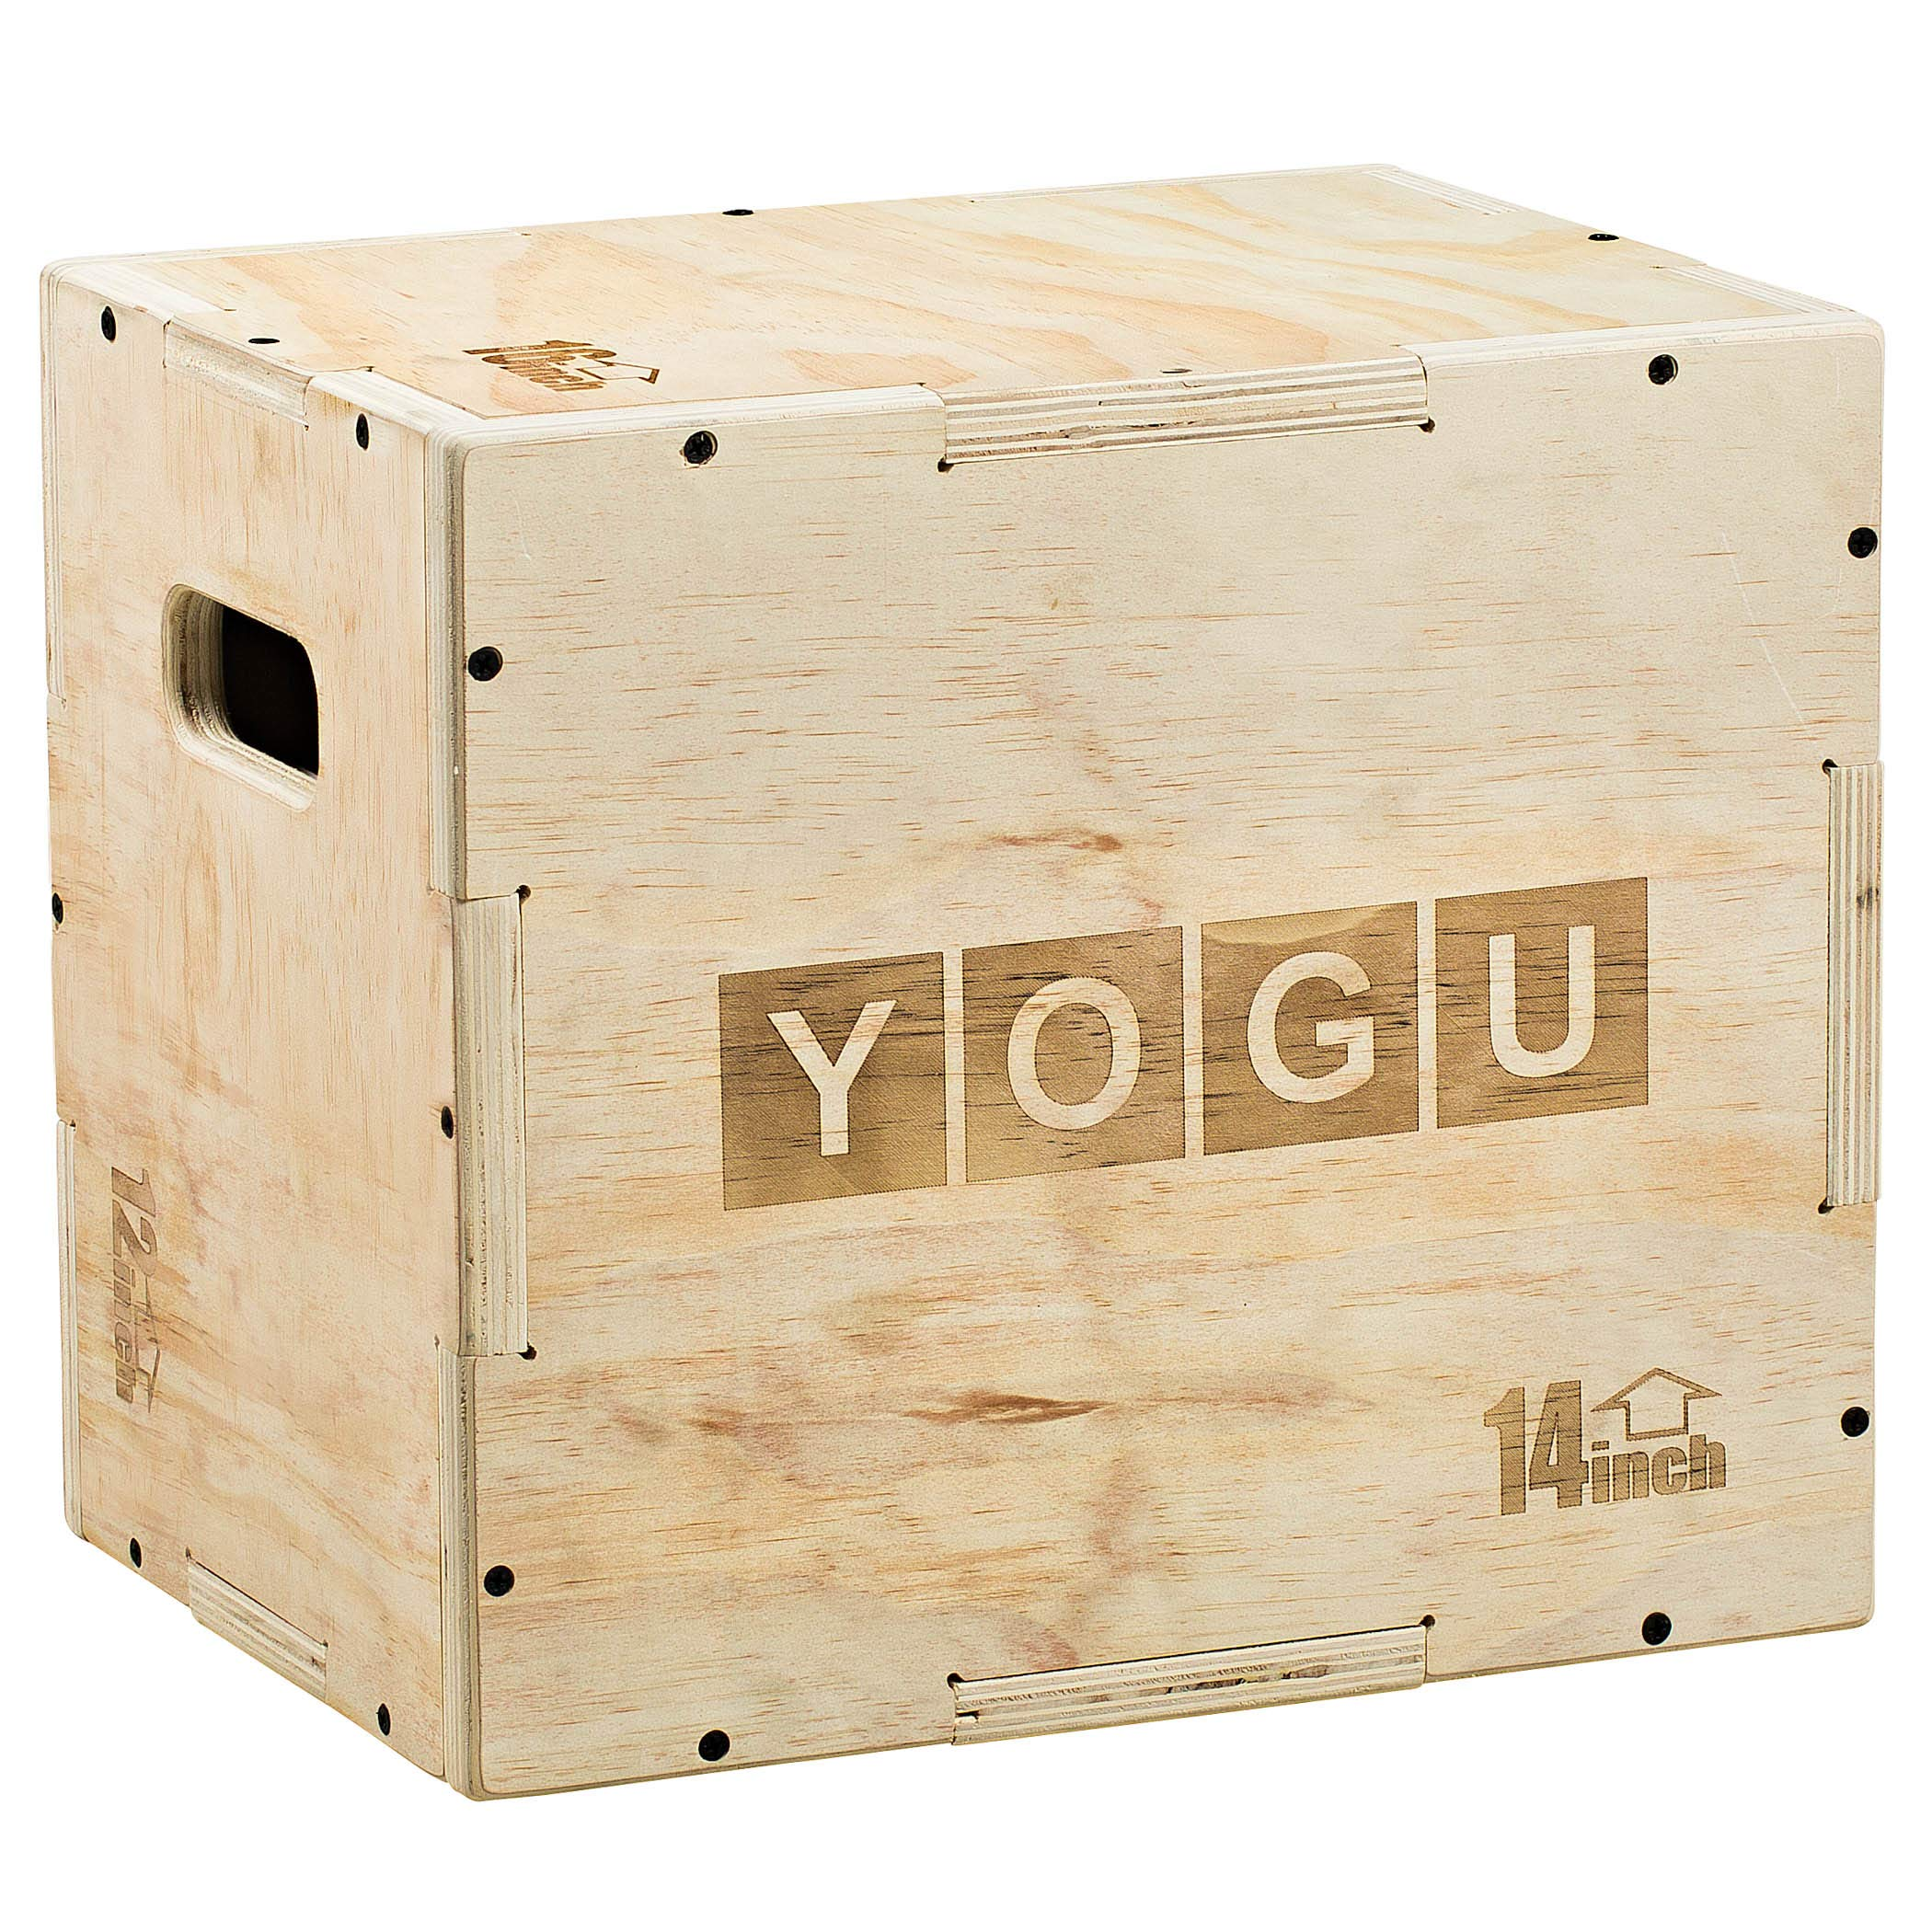 YOGU 3 in 1 Wood Plyometric Box (16/14/12)